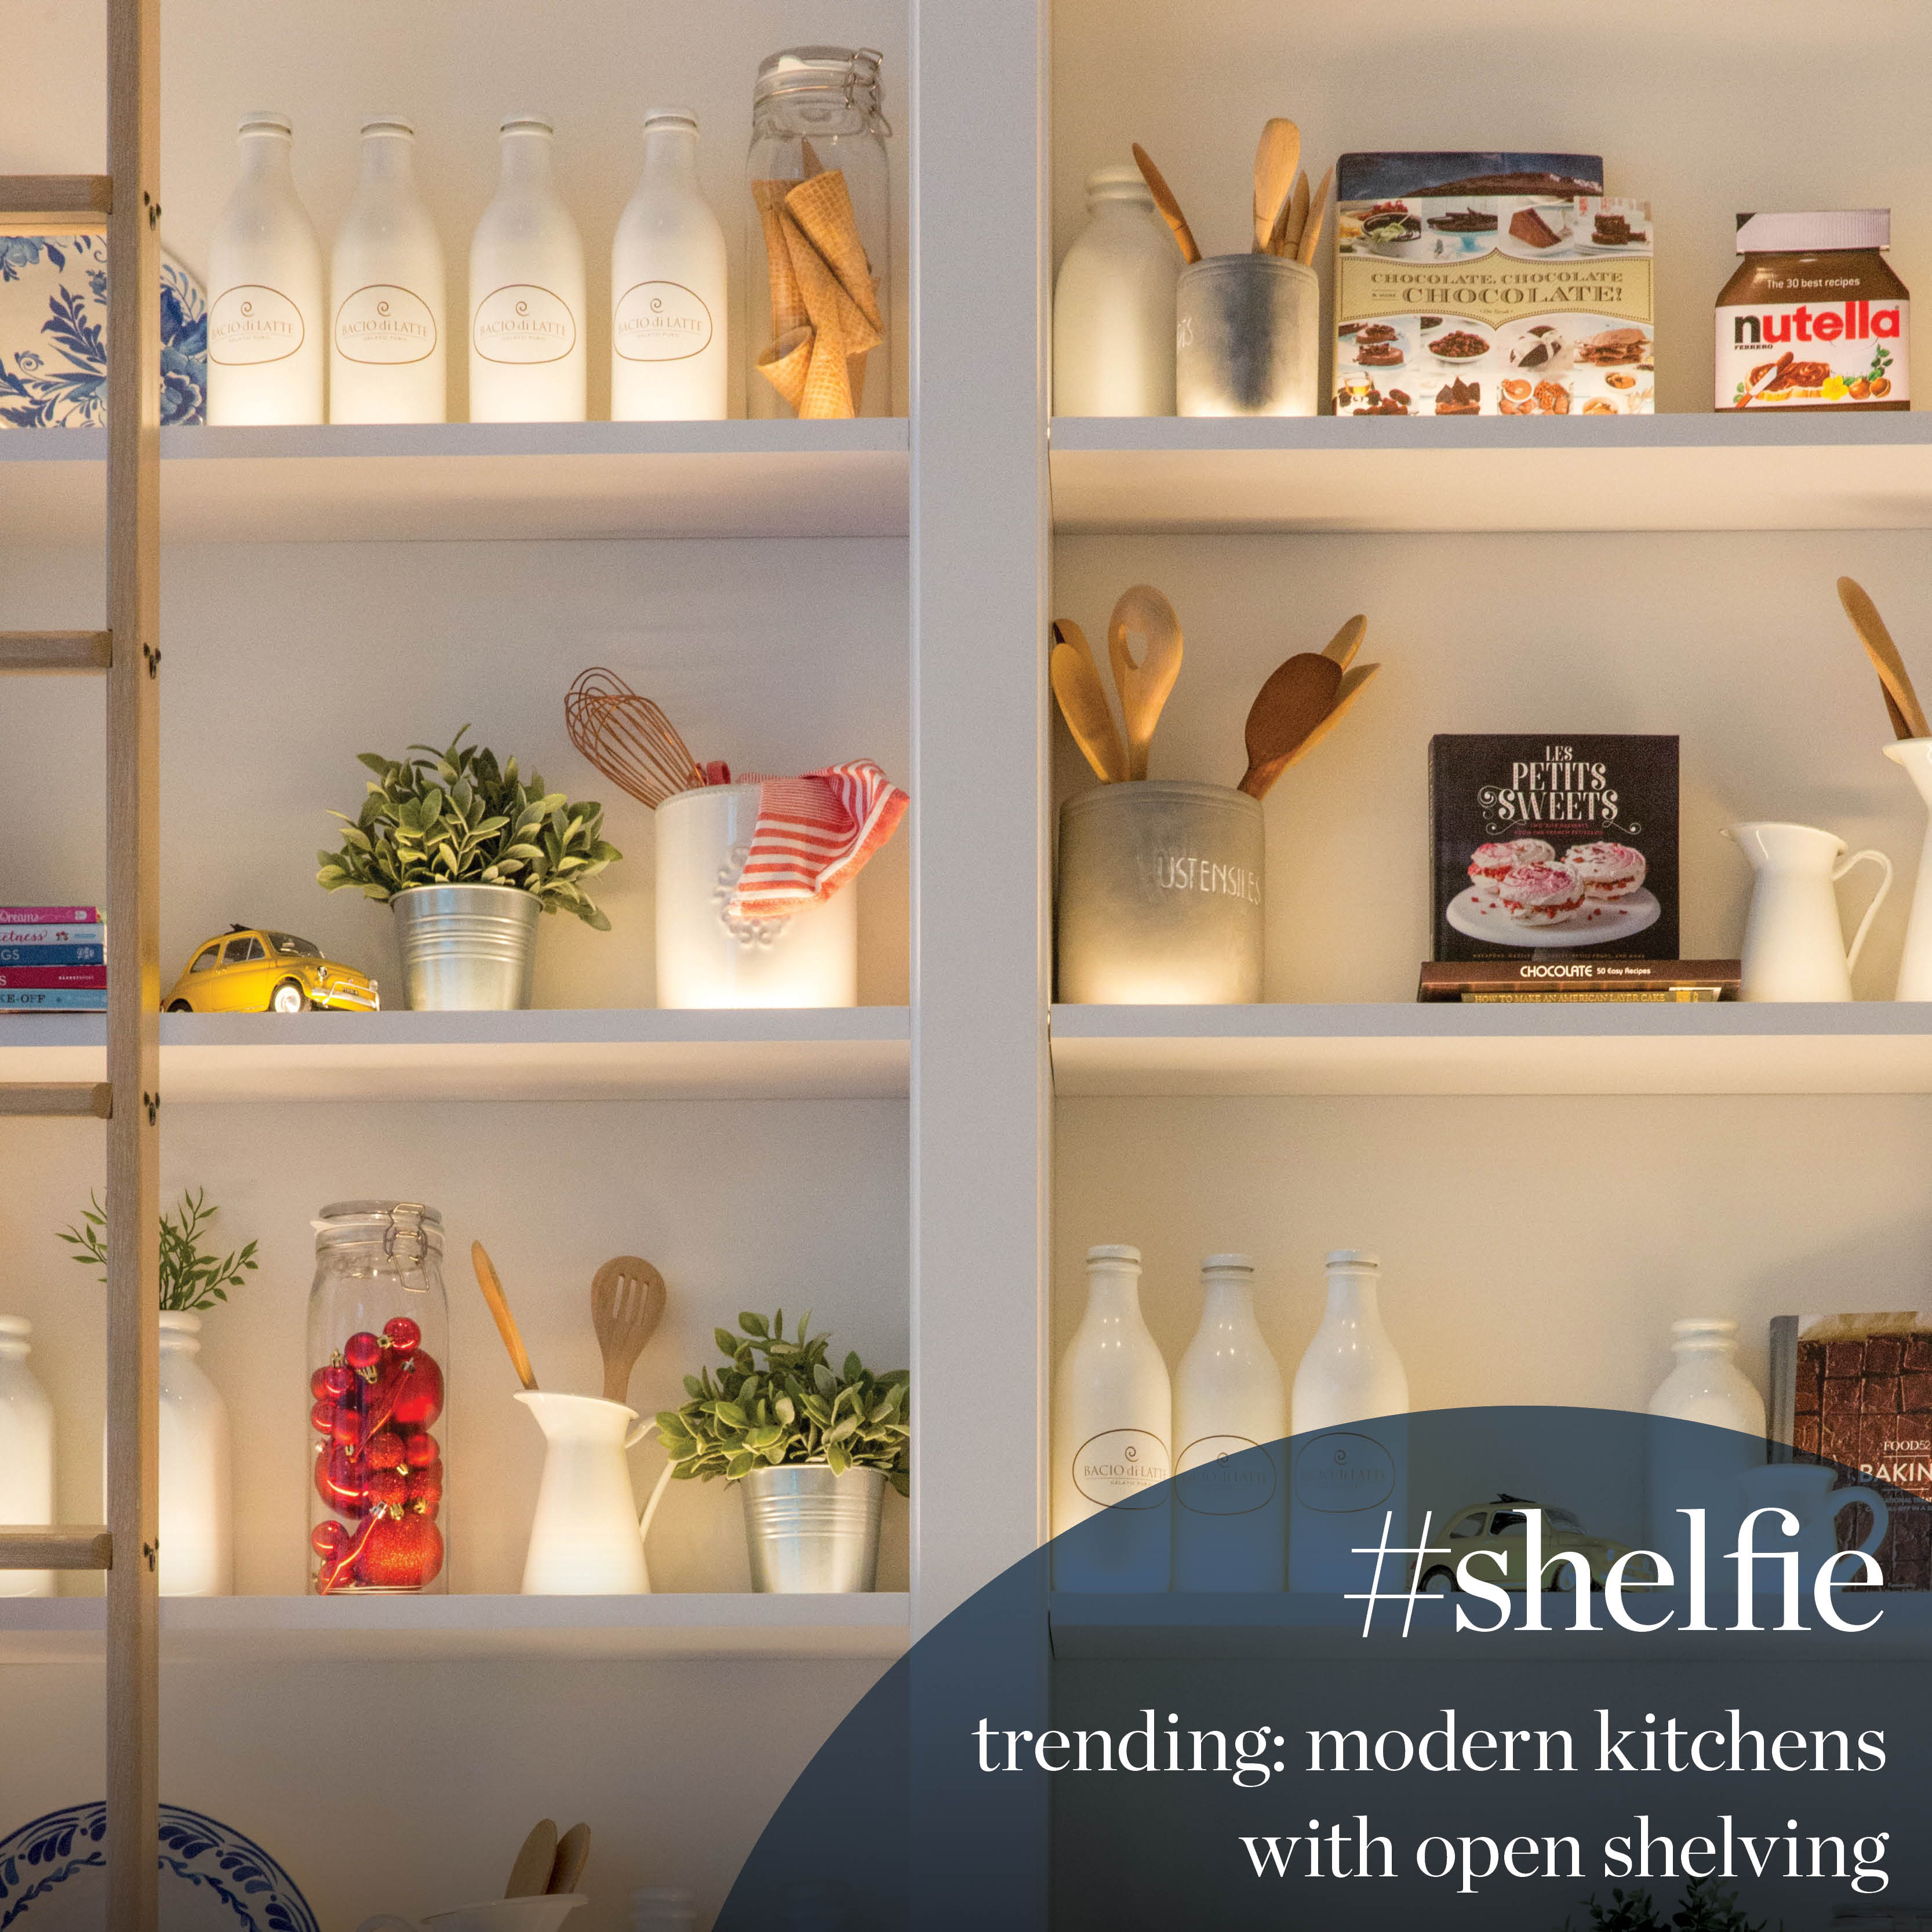 THE KITCHEN #SHELFIE